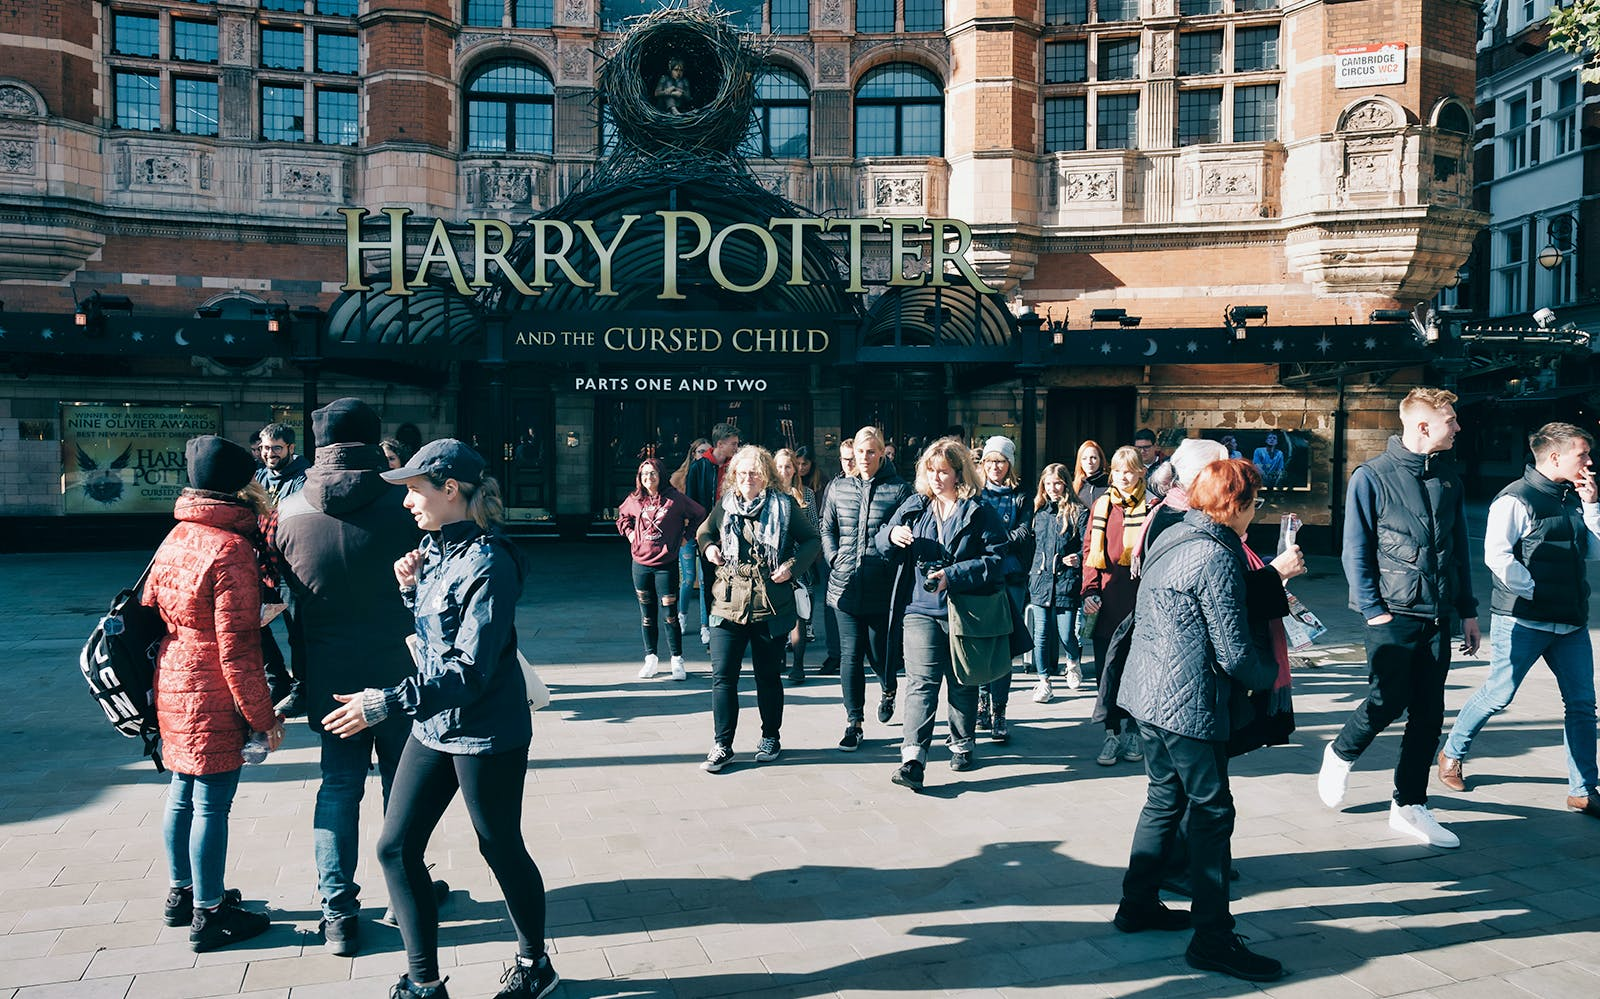 harry potter film locations tour + thames boat cruise-1